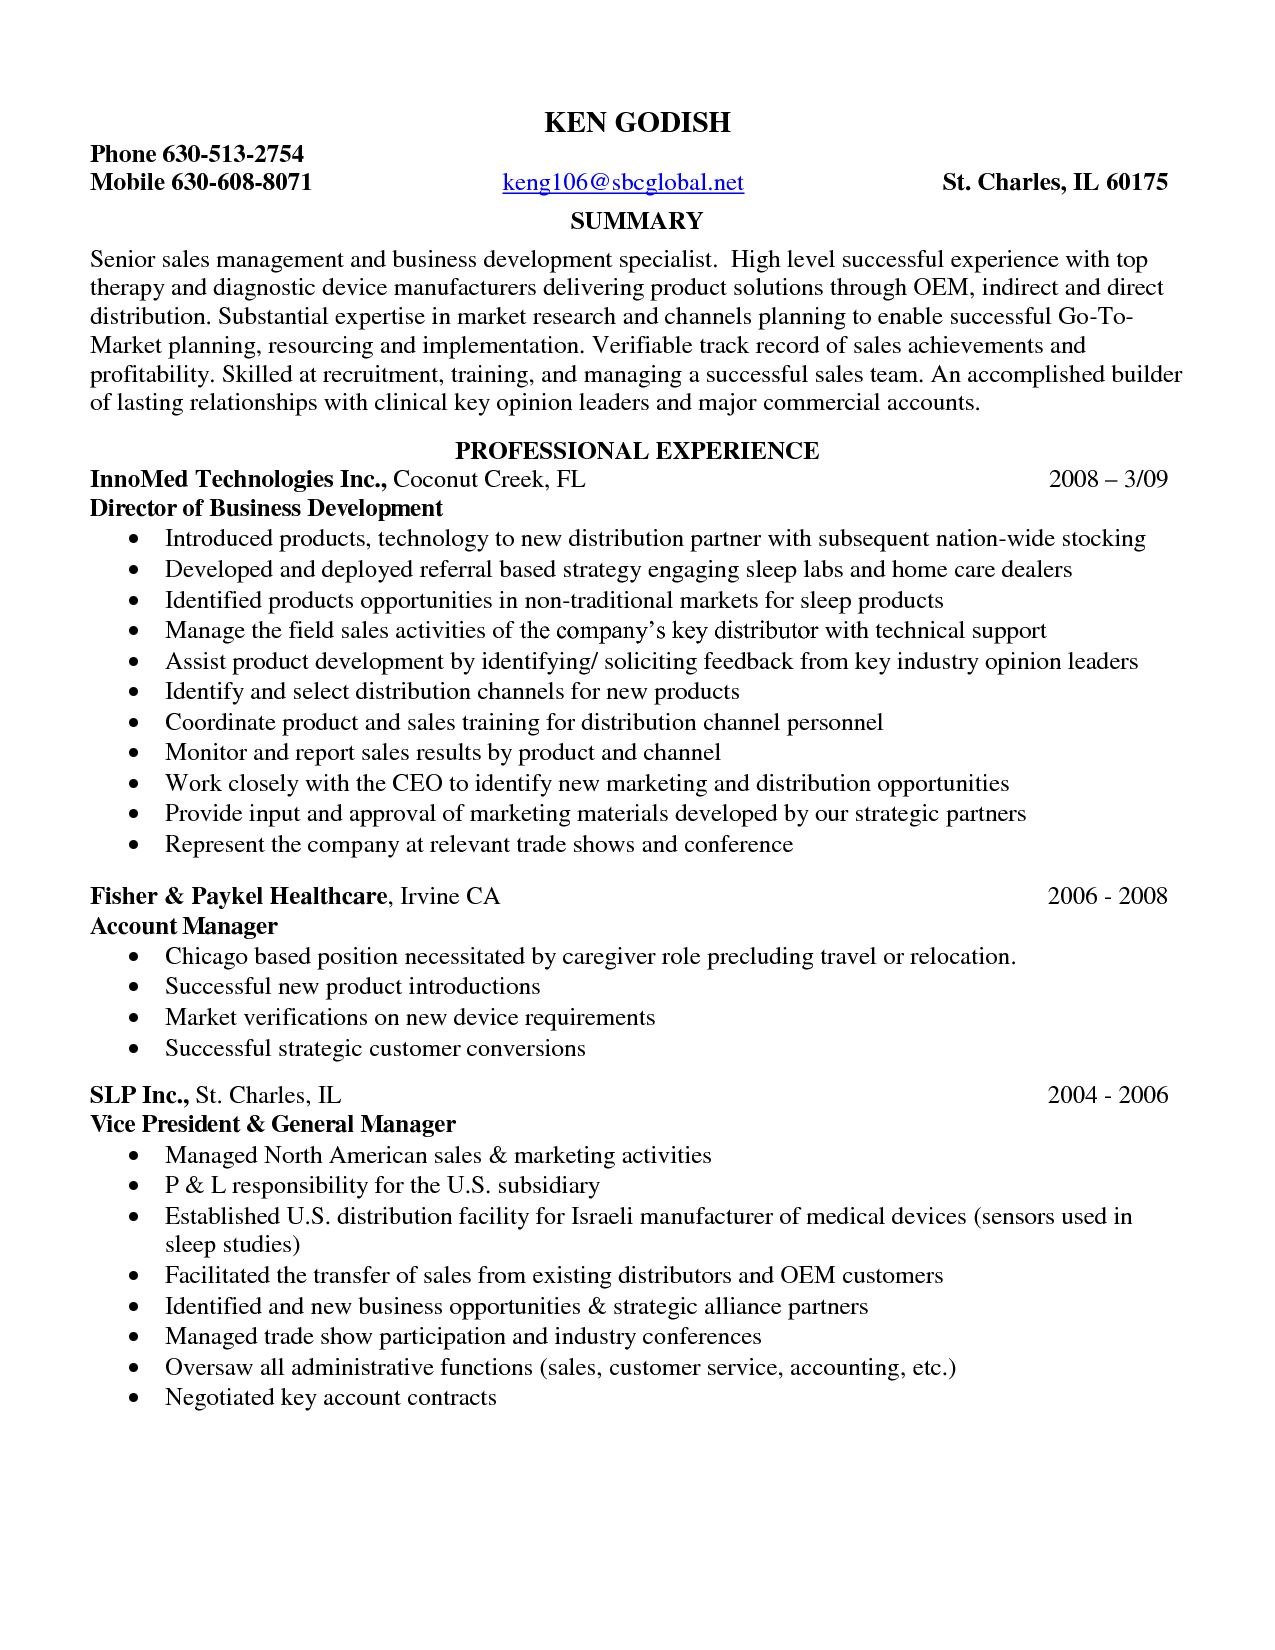 sample resume entry level pharmaceutical sales sample resume entry level pharmaceutical sales entry level pharmaceutical